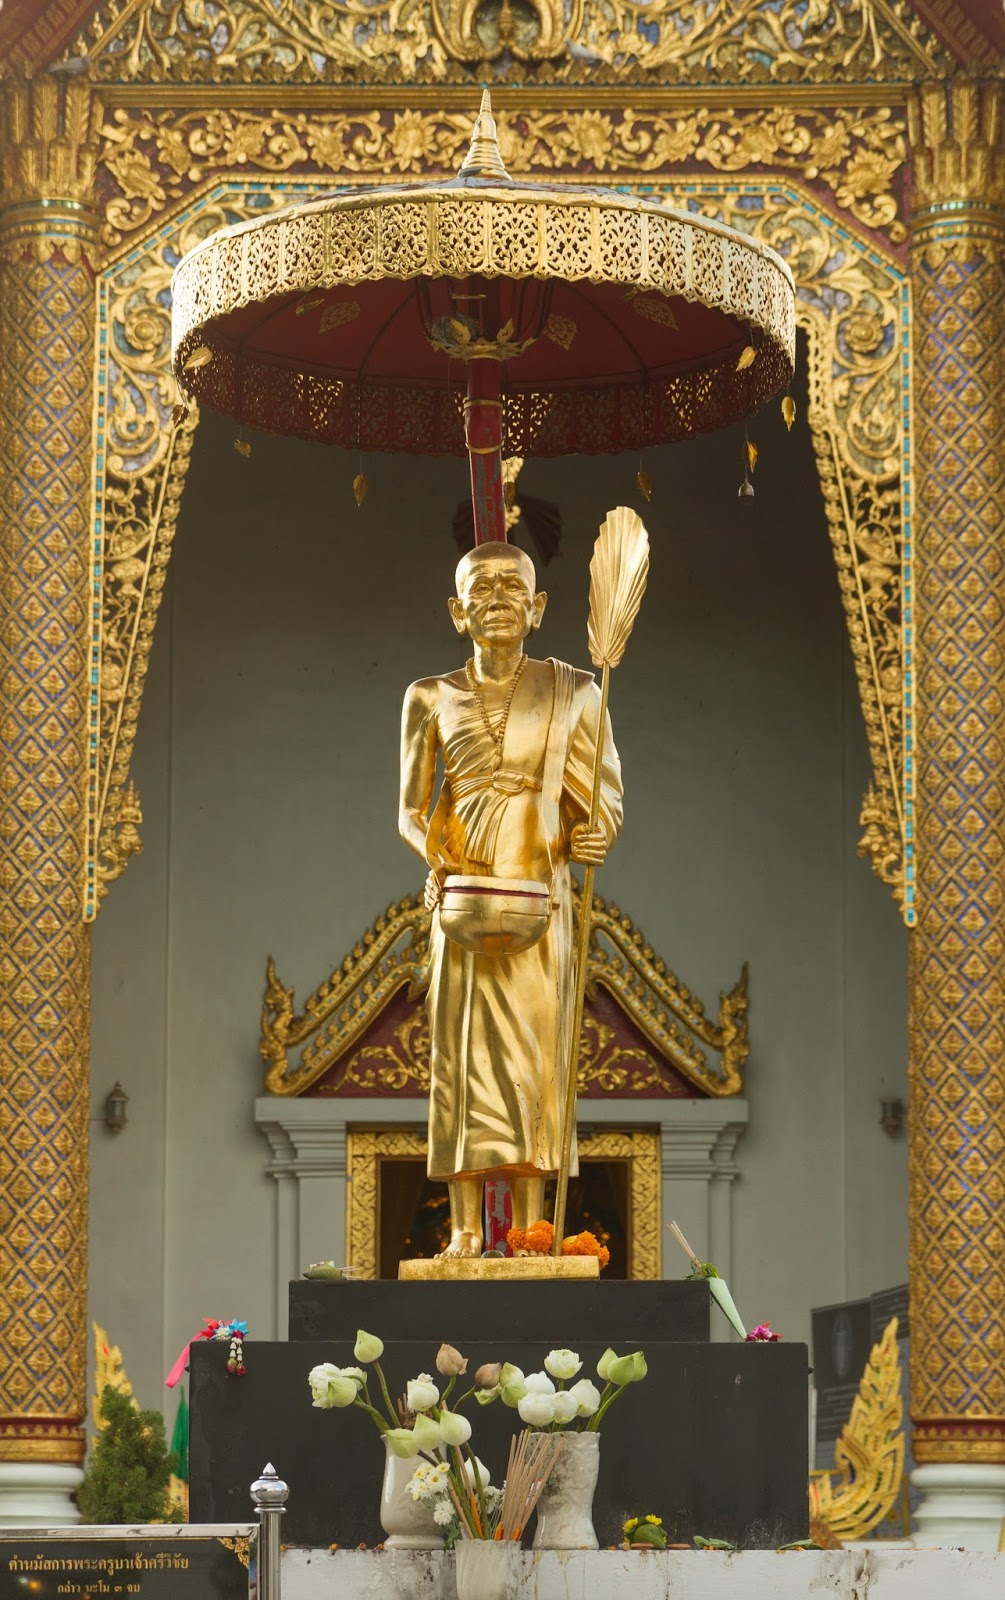 Golf Monk at Wat Phra Singh Temple, Chiang Mai Thailand